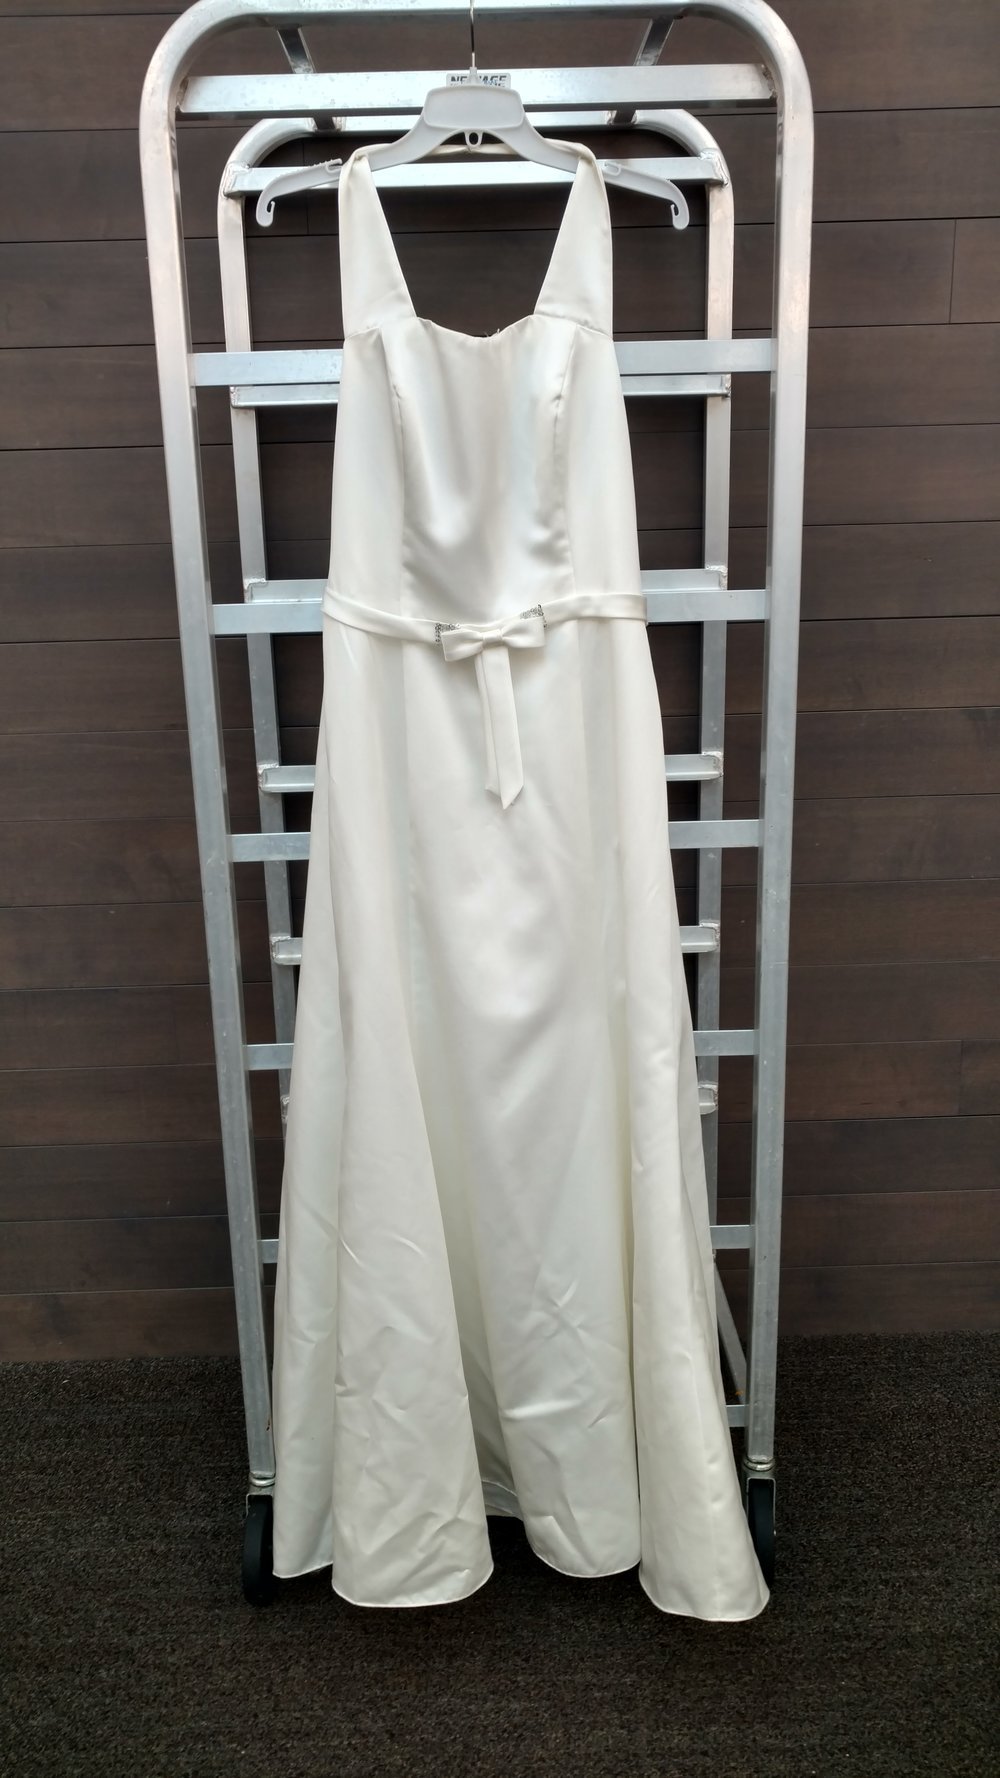 Dress 1 - Alfred Angelo - White, Size unkown, 32 inches at belt line, 55 inches from neckline to hem